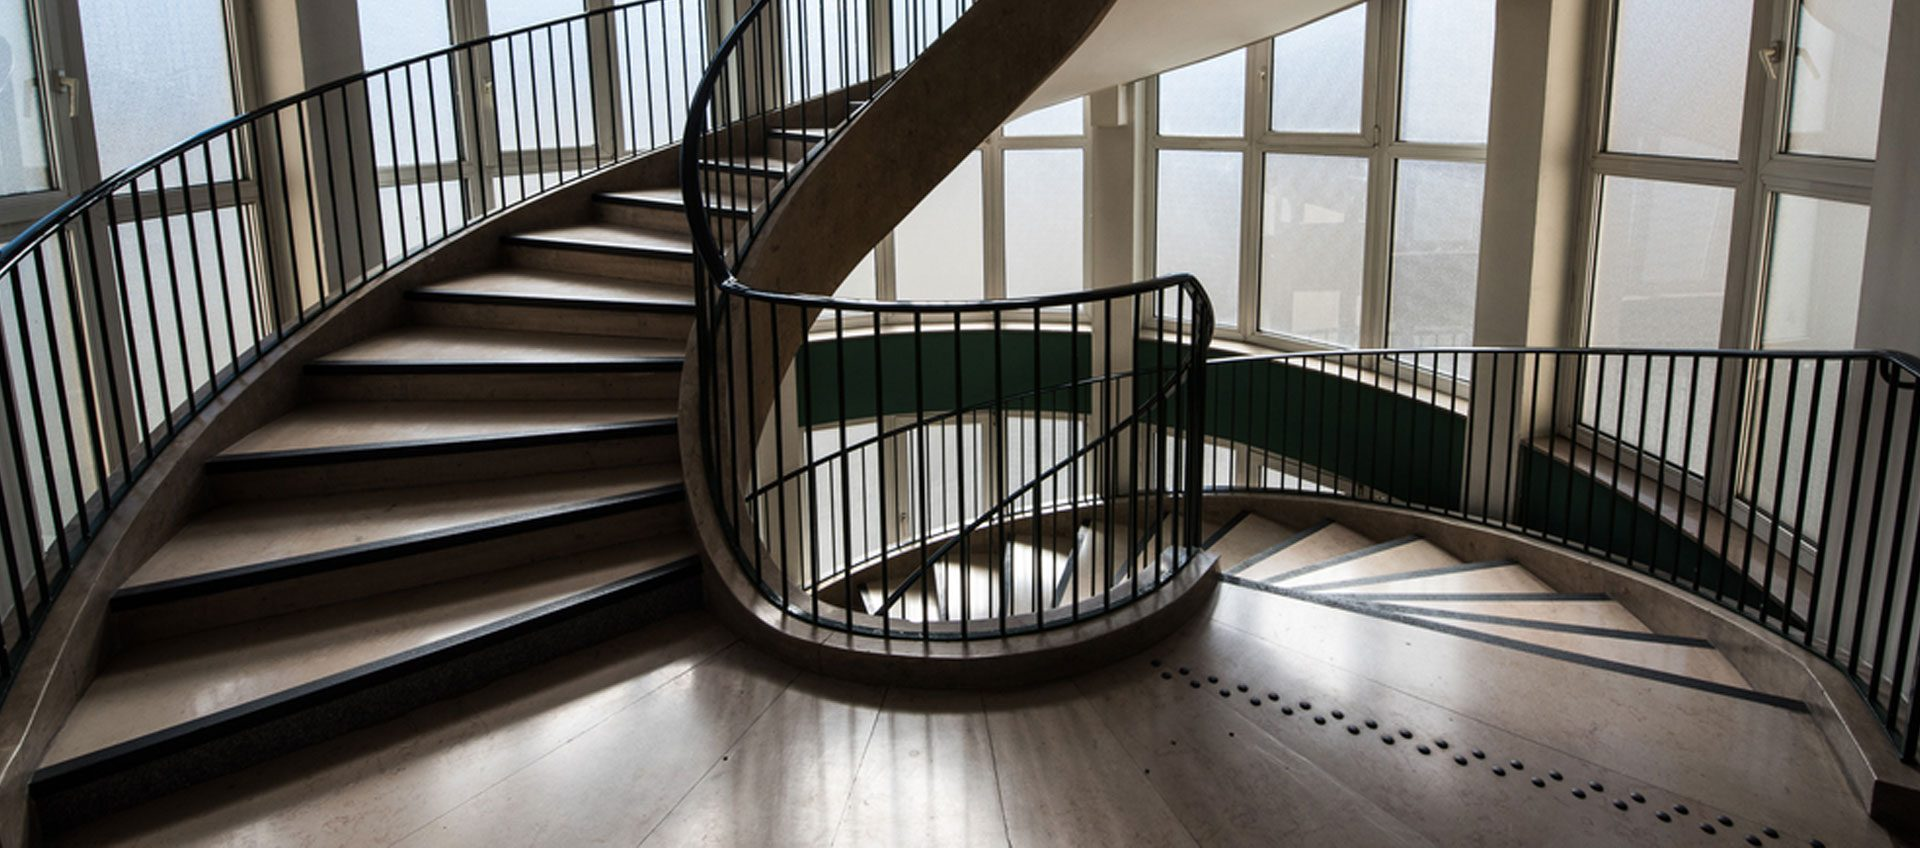 Facts On Handrail Design